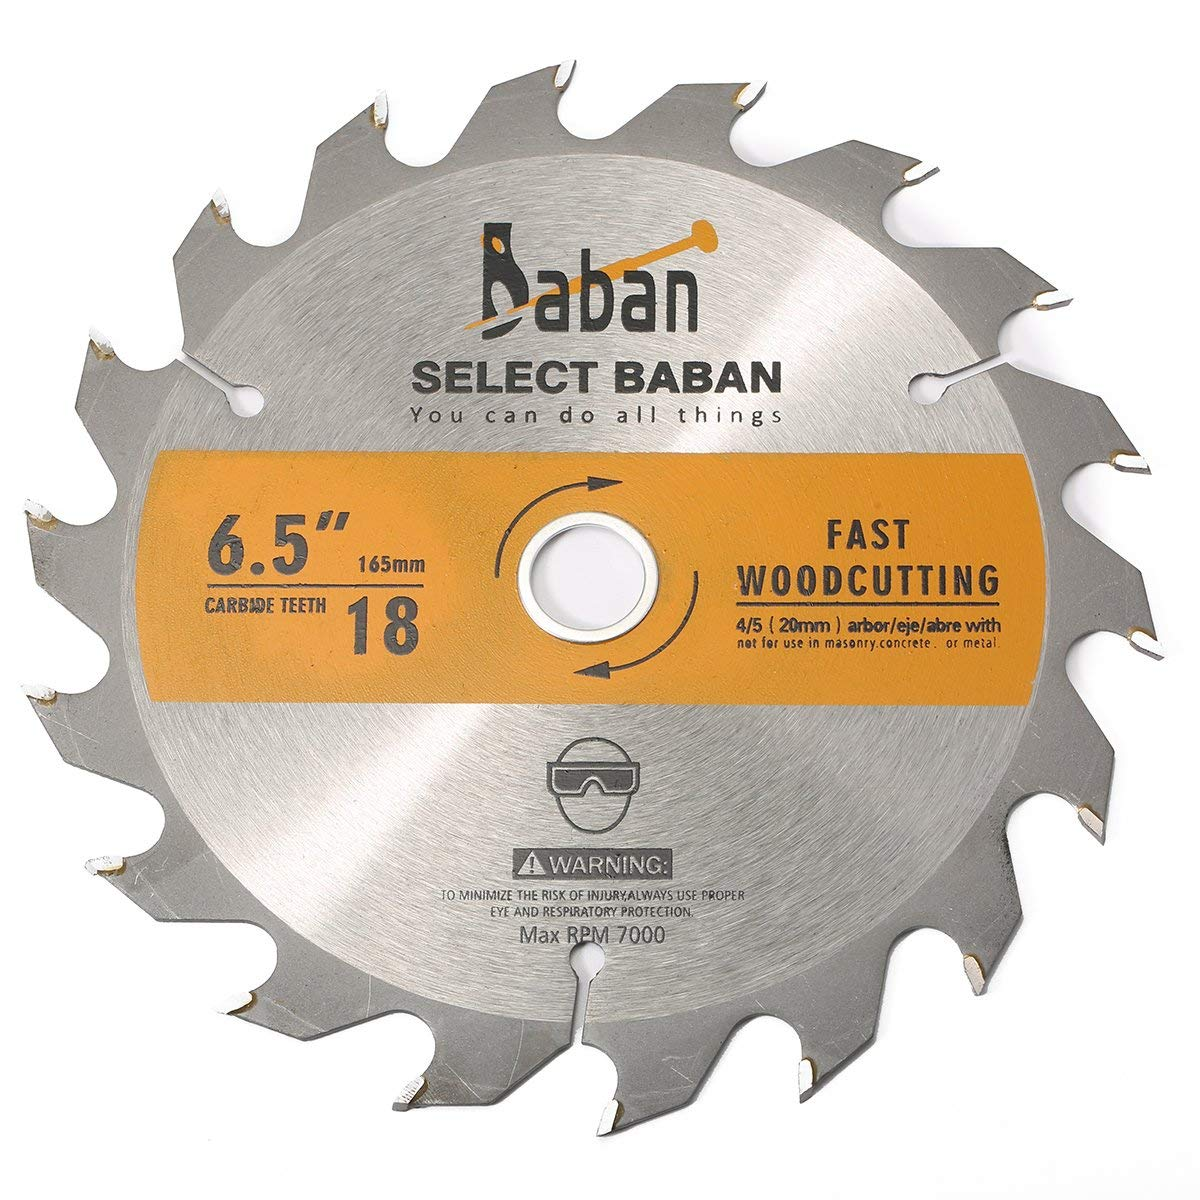 Cheap Circular Saw Blade For Cutting V Slot, find Circular Saw Blade